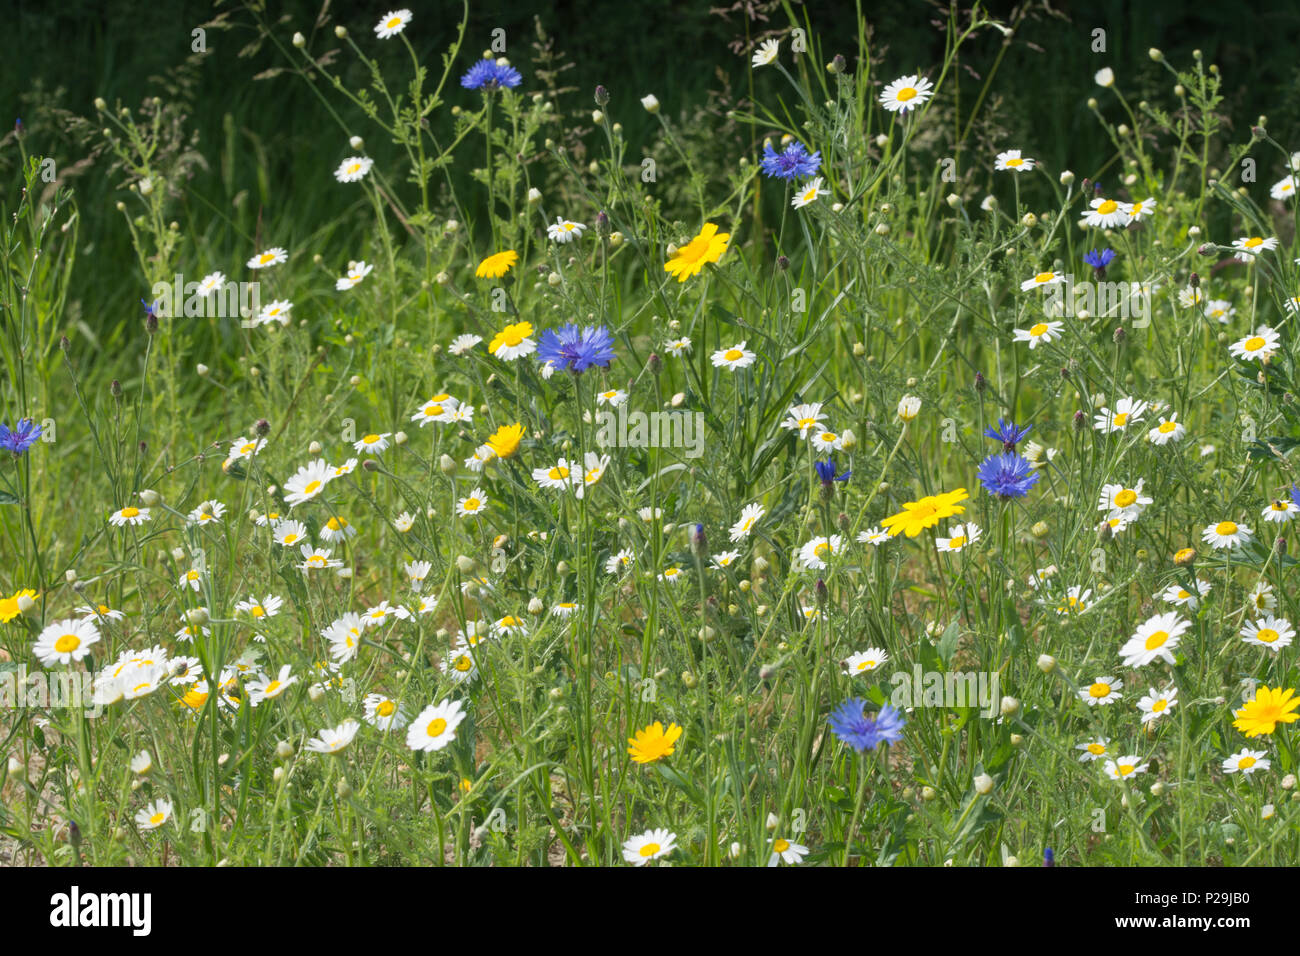 Colourful wildflowers including ox-eye daisiera and blue cornflowers at Bramshot Farm Country Park, Fleet, Hampshire, UK Stock Photo